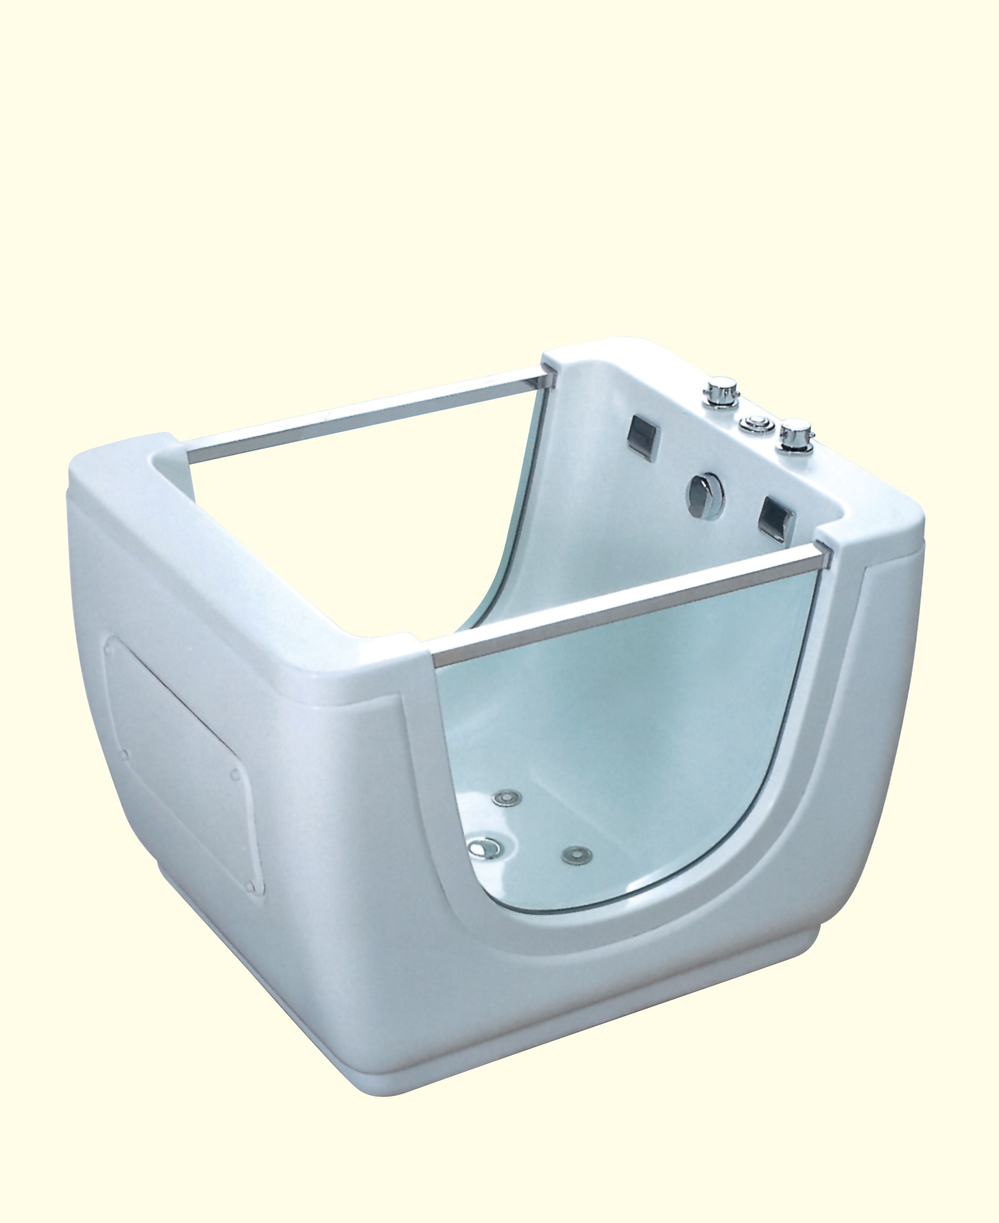 Hs-b07 Kid Spa/ Infant Bath Tub/ Baby Spa Tubs - Buy Kid Spa,Infant ...